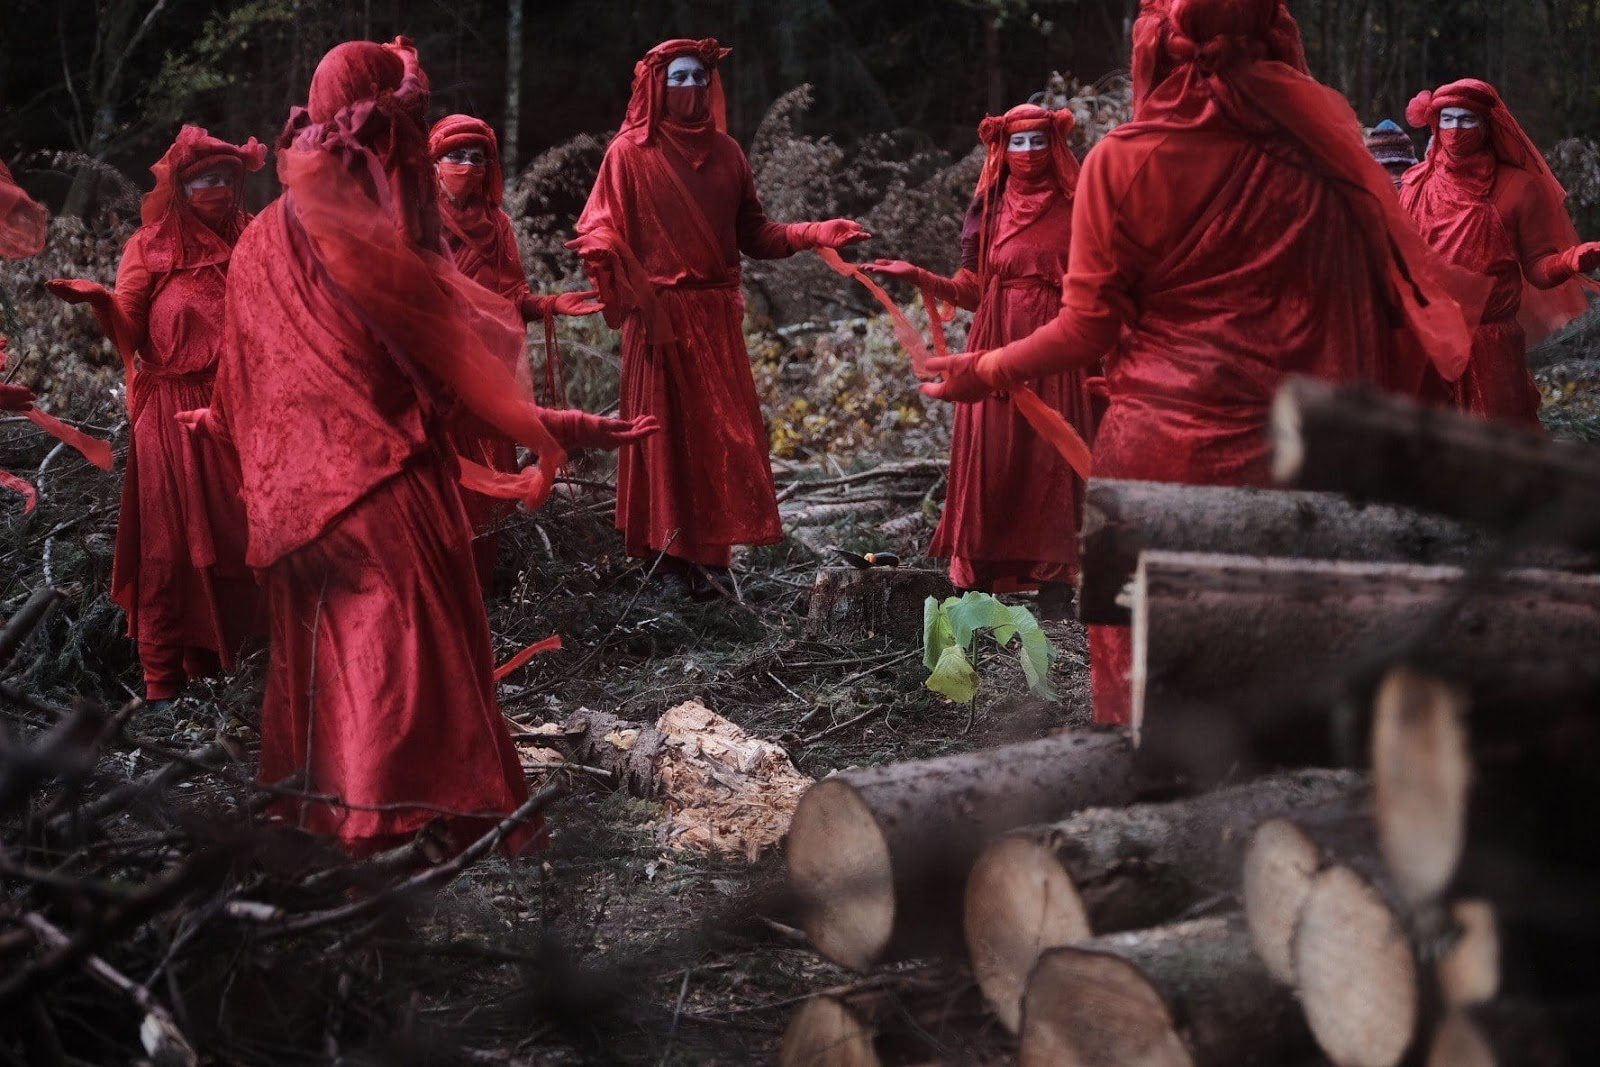 The Red Brigade mourn a forest being cleared for a motorway in Germany.